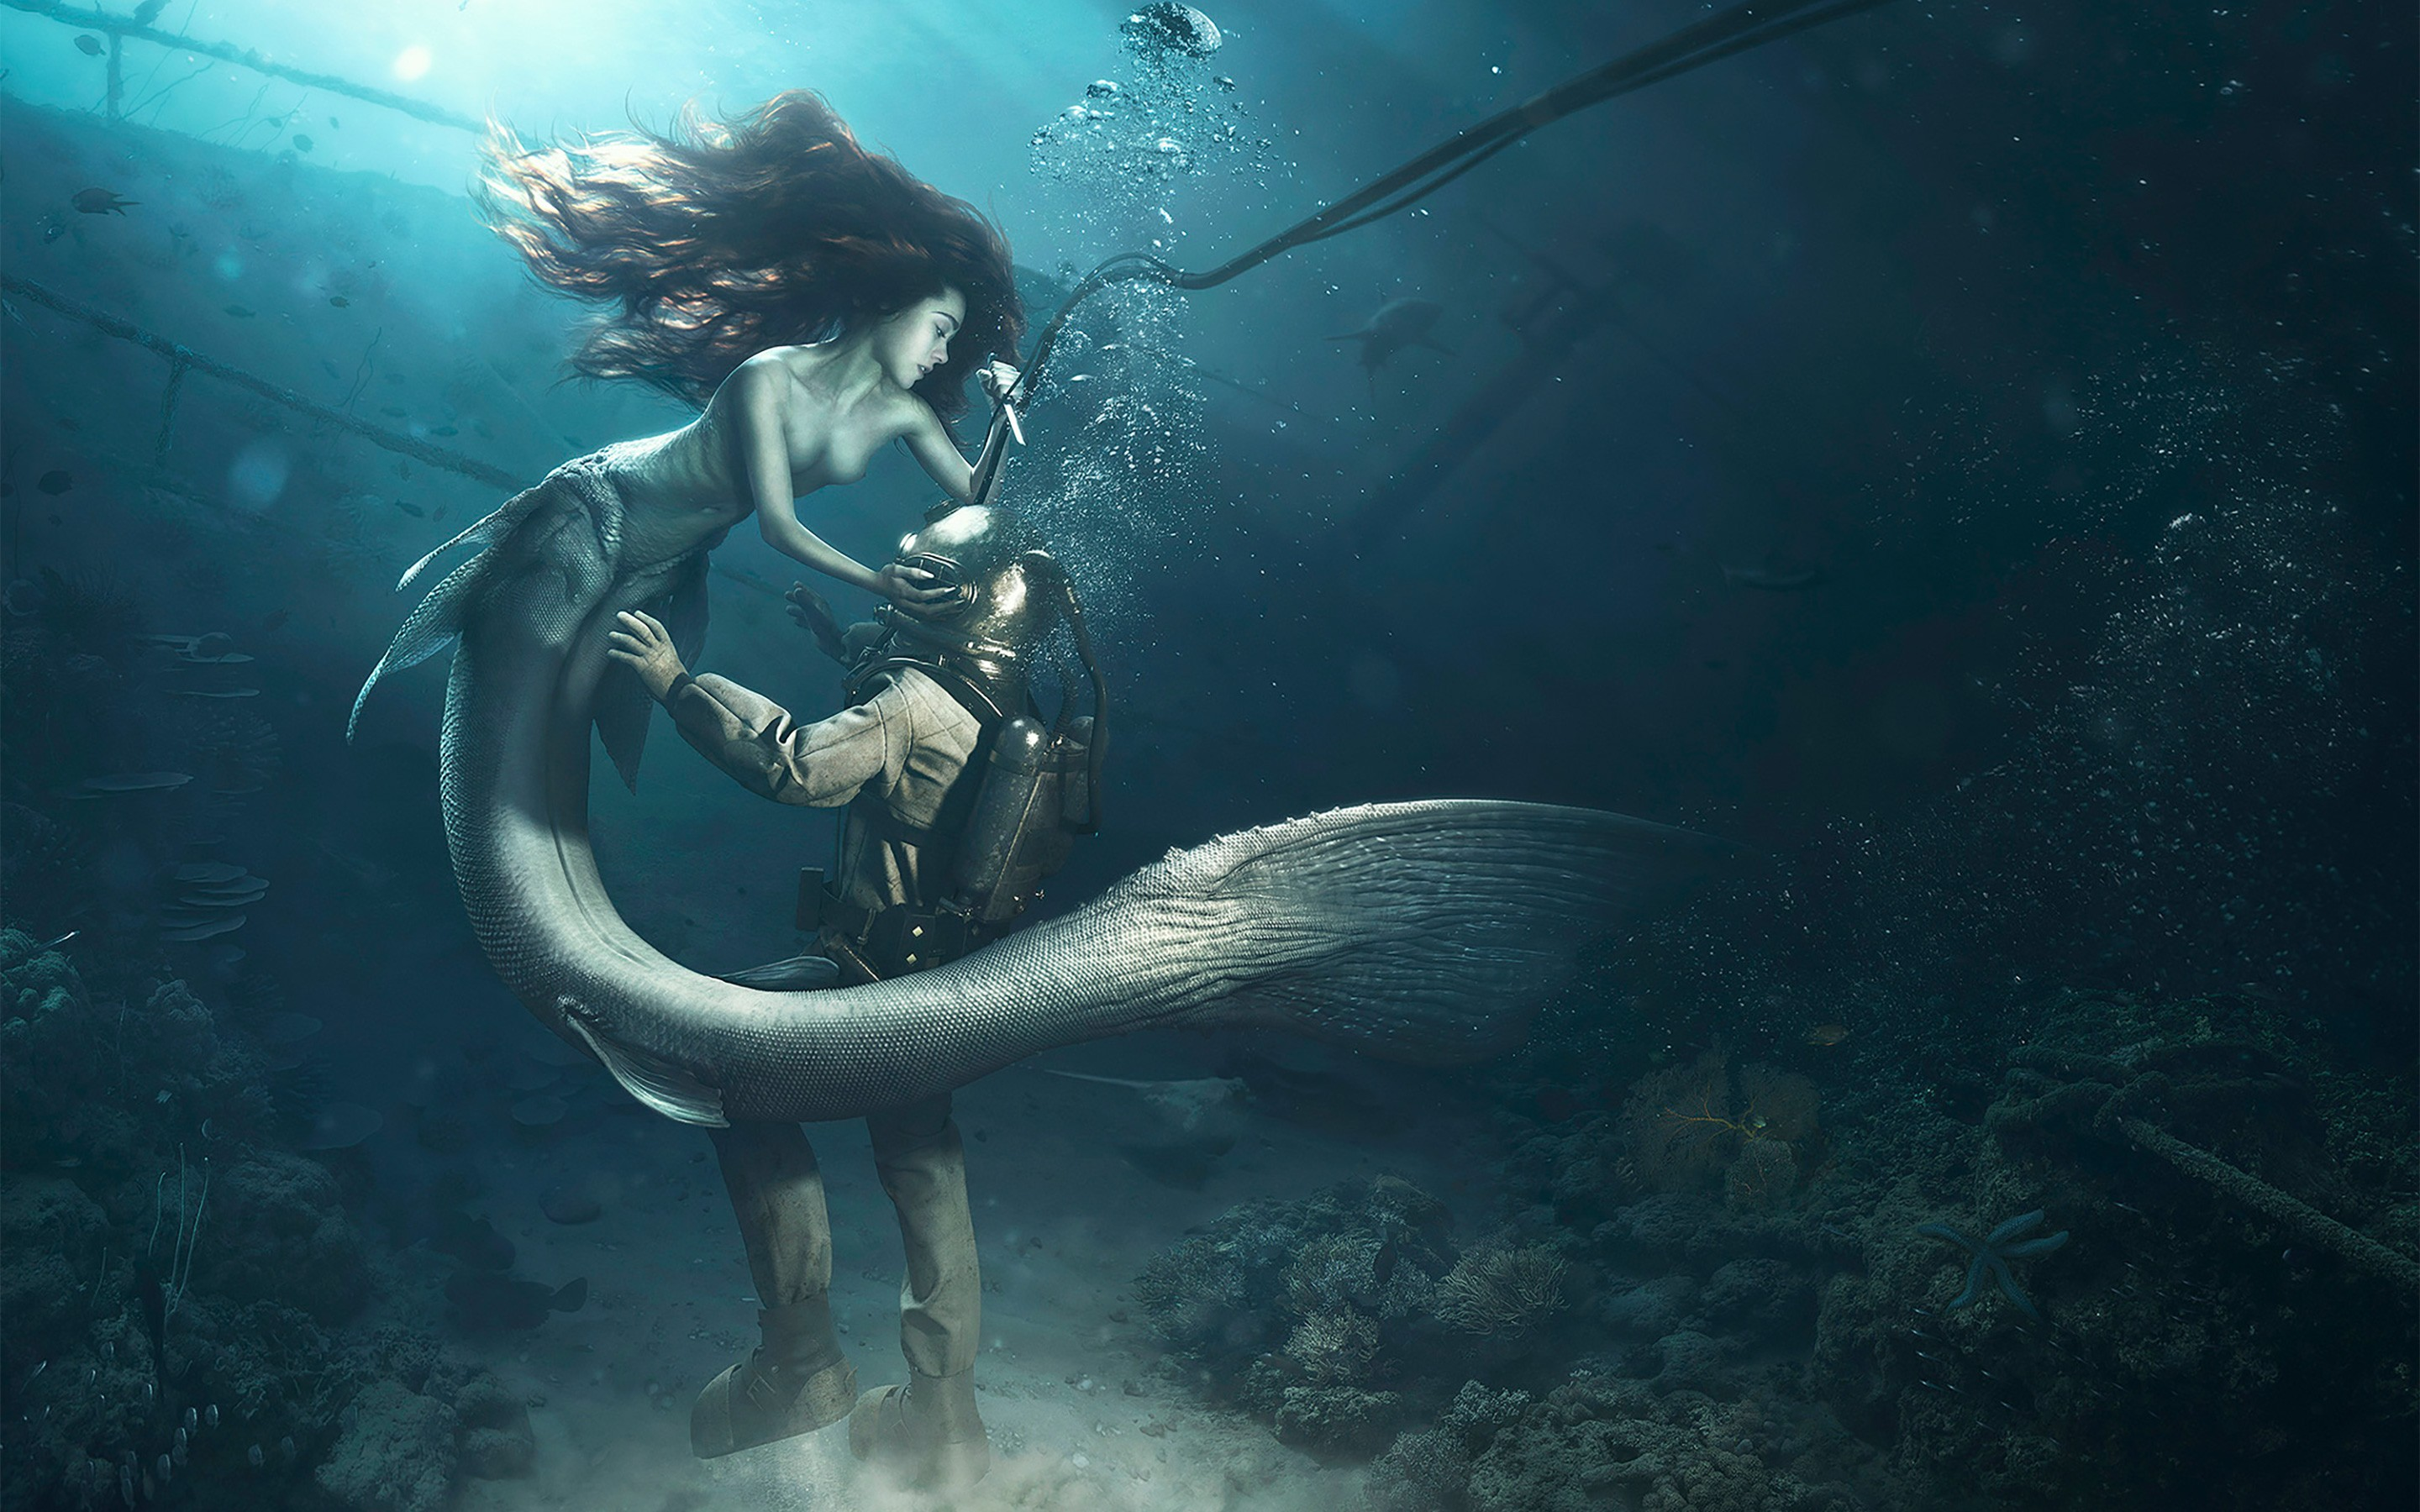 2048x1152 diver and the mermaid 2048x1152 resolution hd 4k - Mermaid wallpaper hd ...